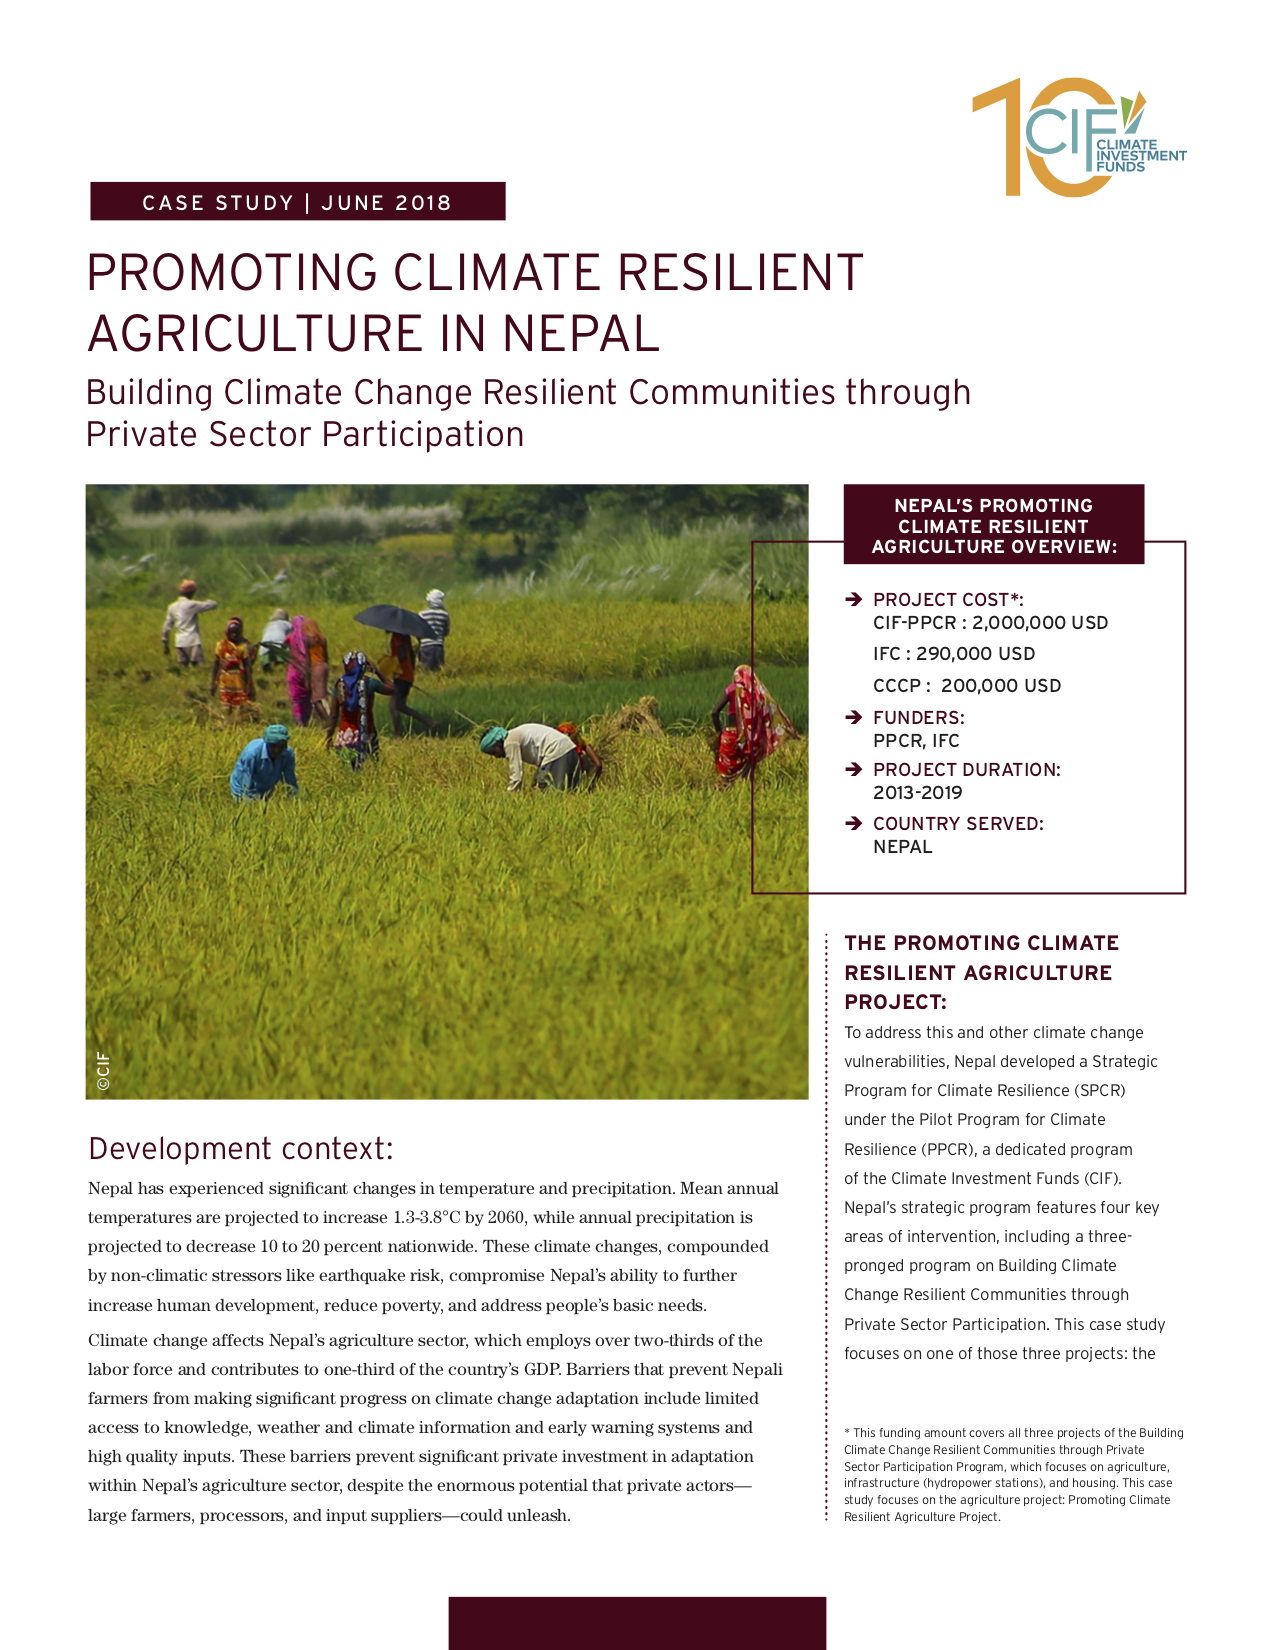 Promoting Climate Resilient Agriculture in Nepal: Building